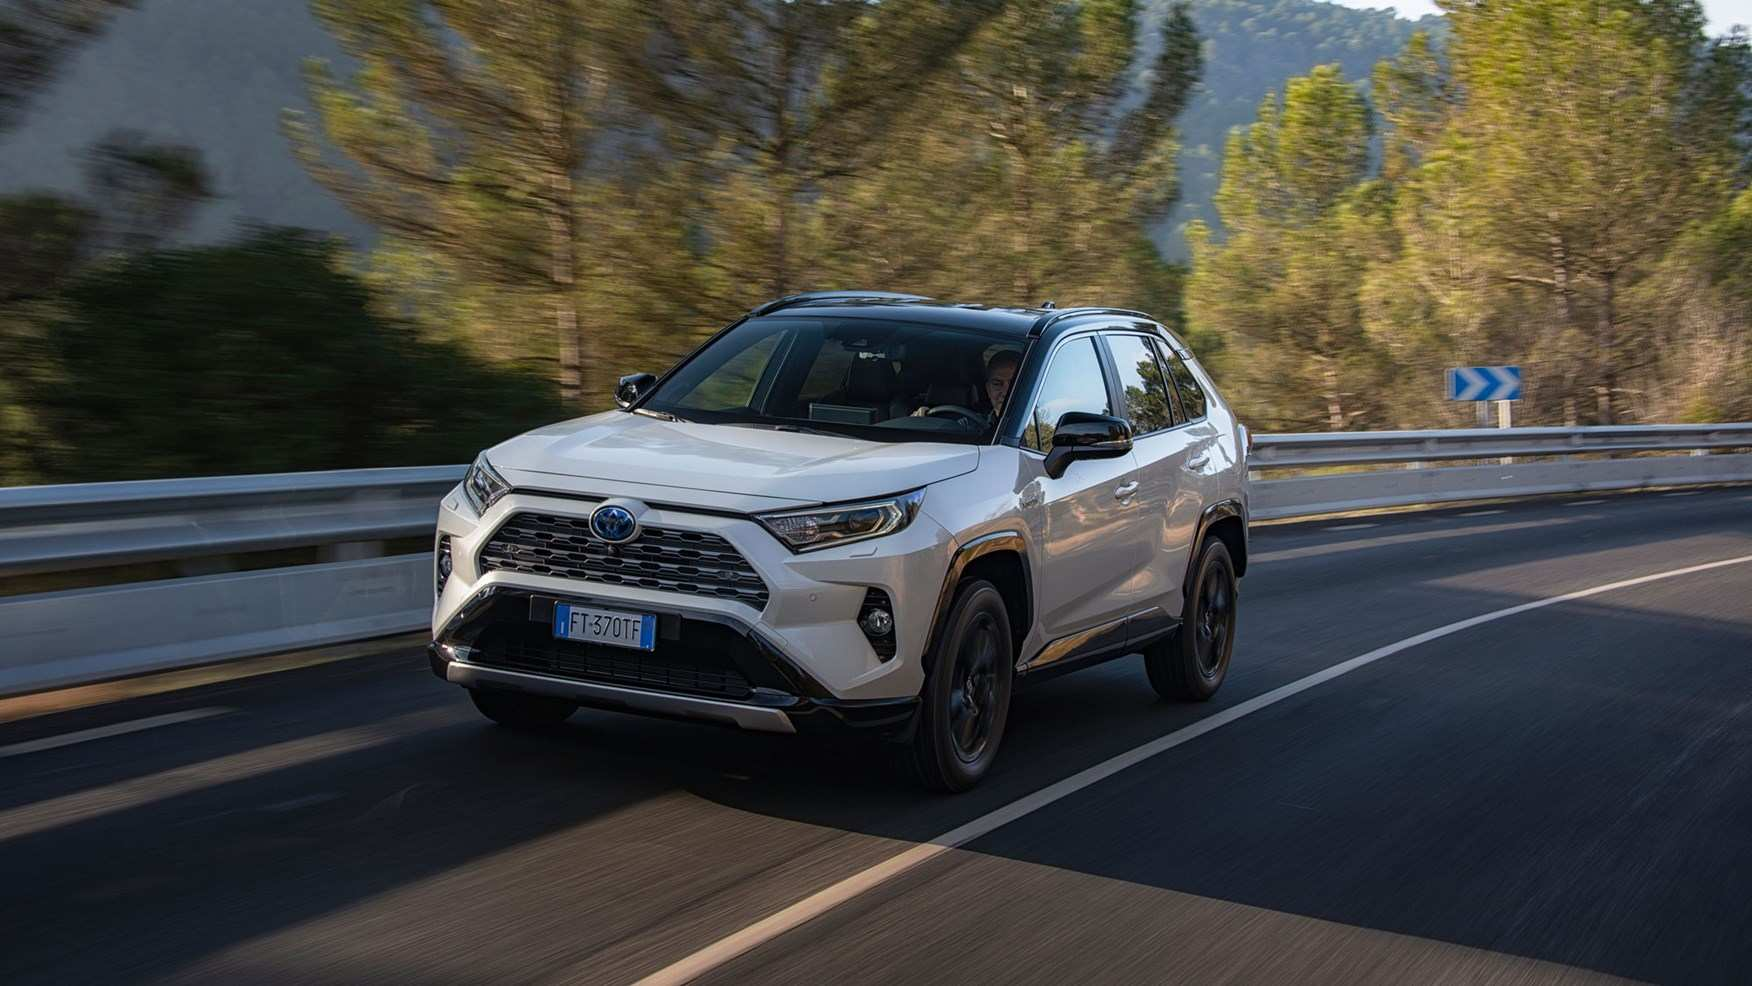 21 All New Toyota Diesel 2019 Price And Review